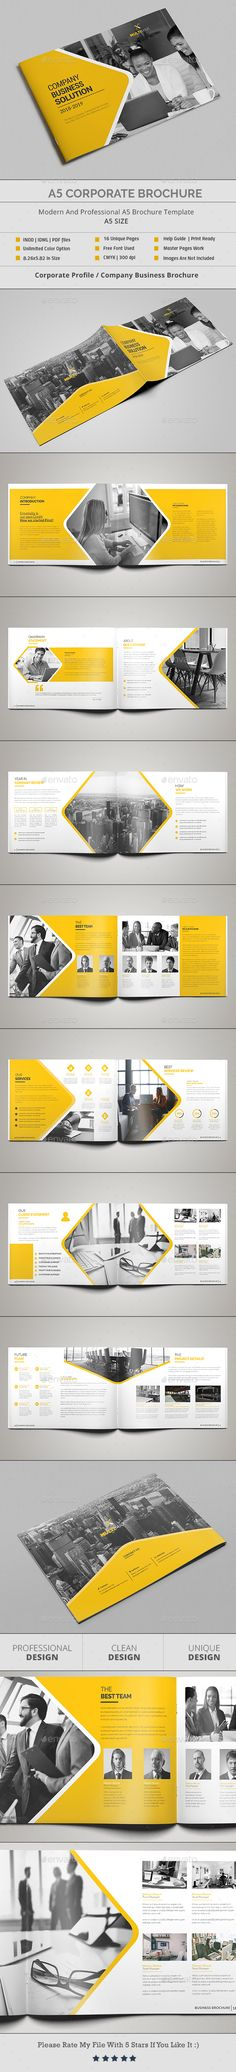 A5 Corporate Brochure Template InDesign INDD